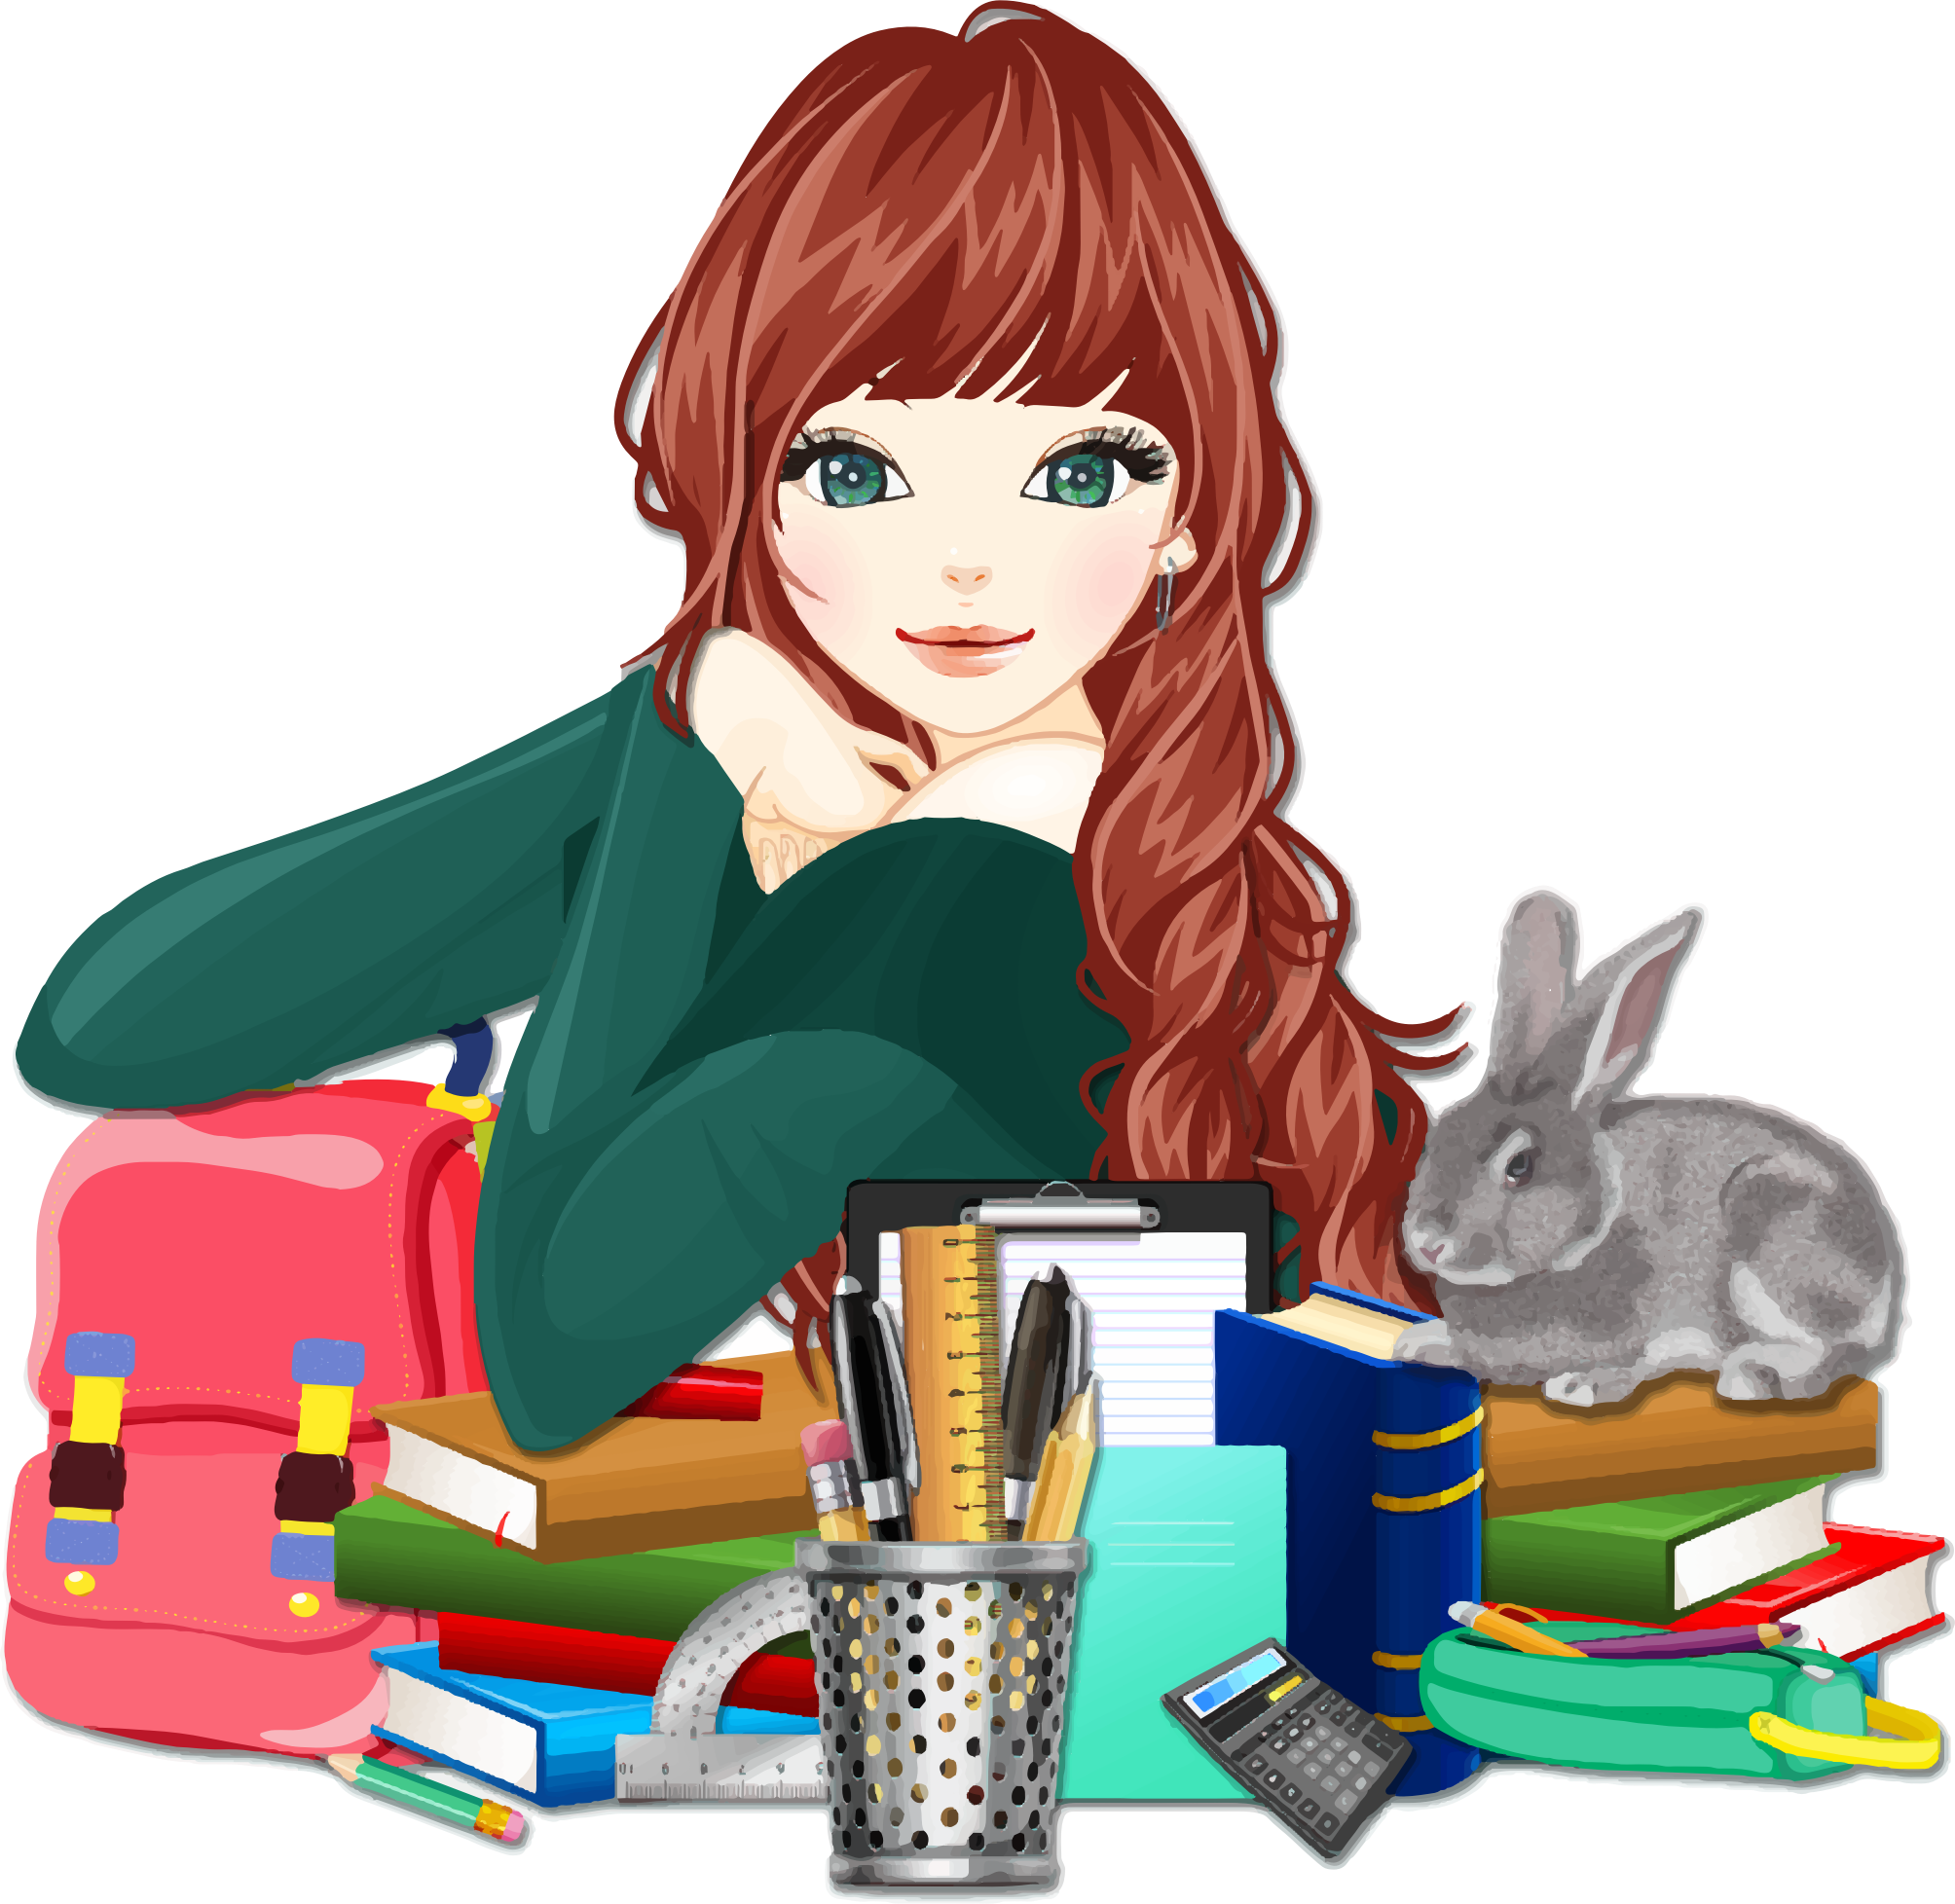 Clipart school pictures png library Clipart - School Girl With Rabbit png library